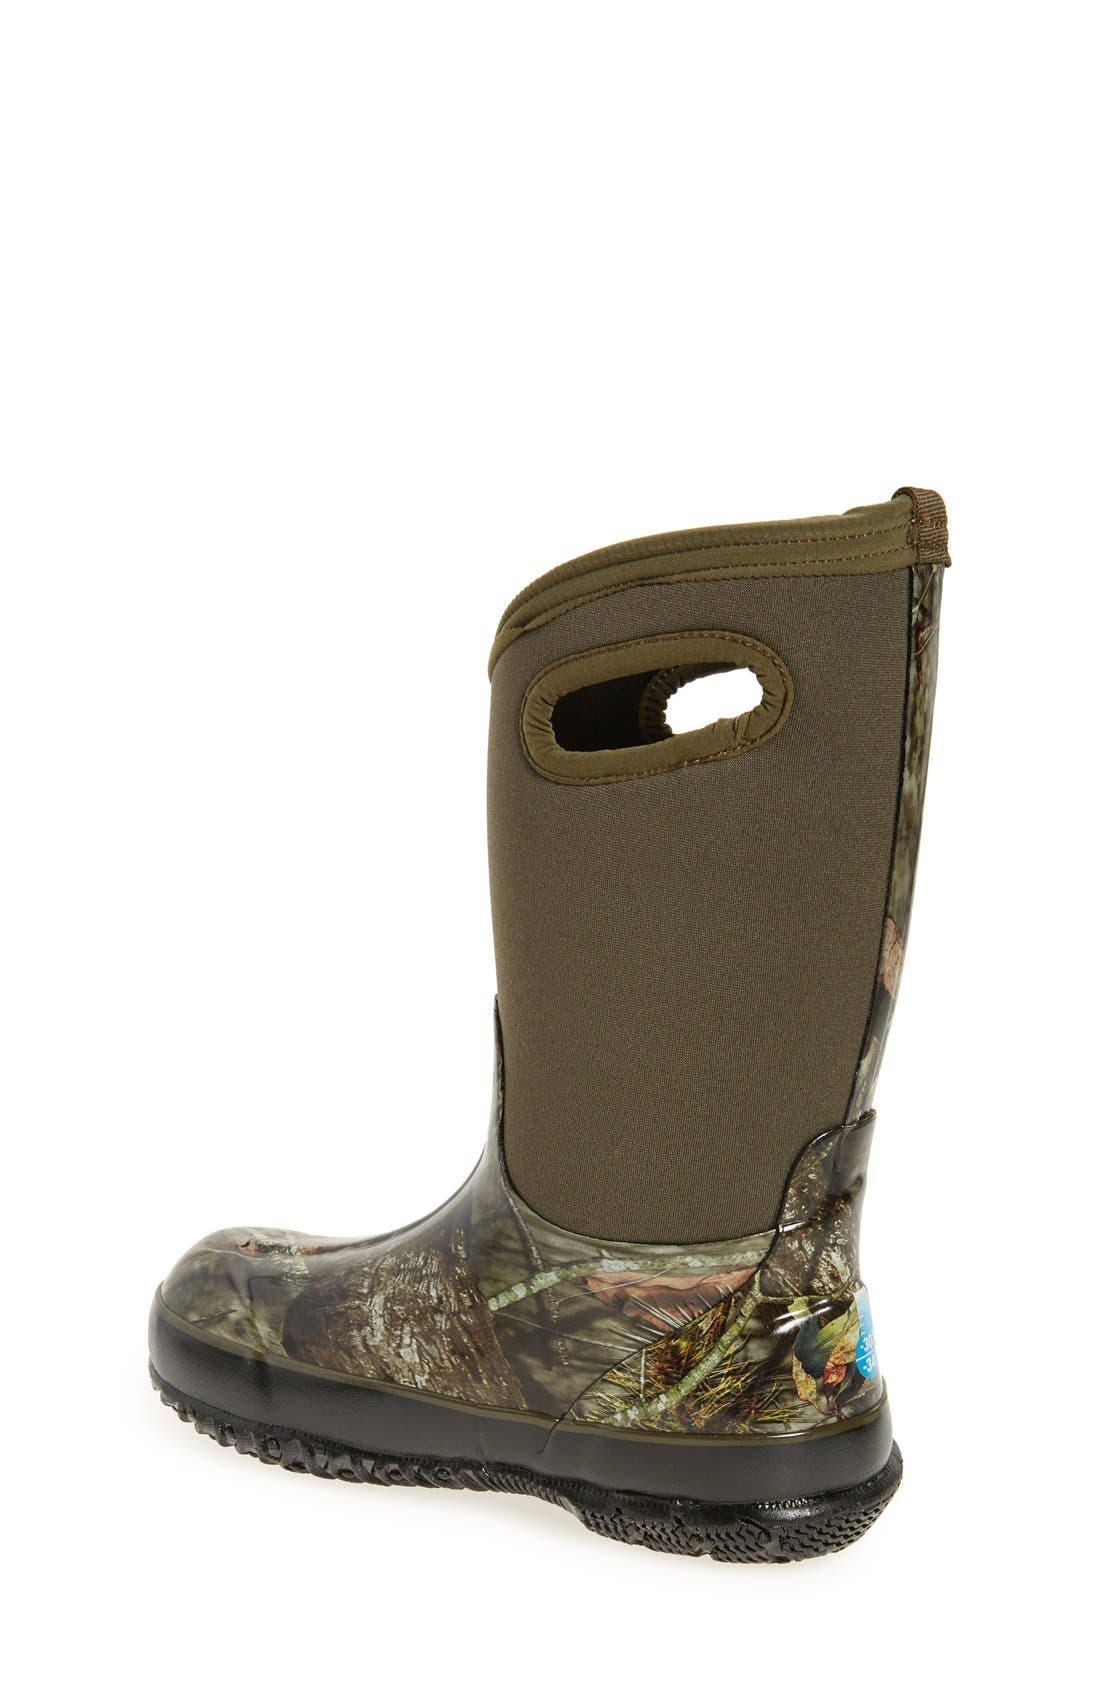 Classic Camo Insulated Waterproof Boot,                             Alternate thumbnail 2, color,                             Mossy Oak